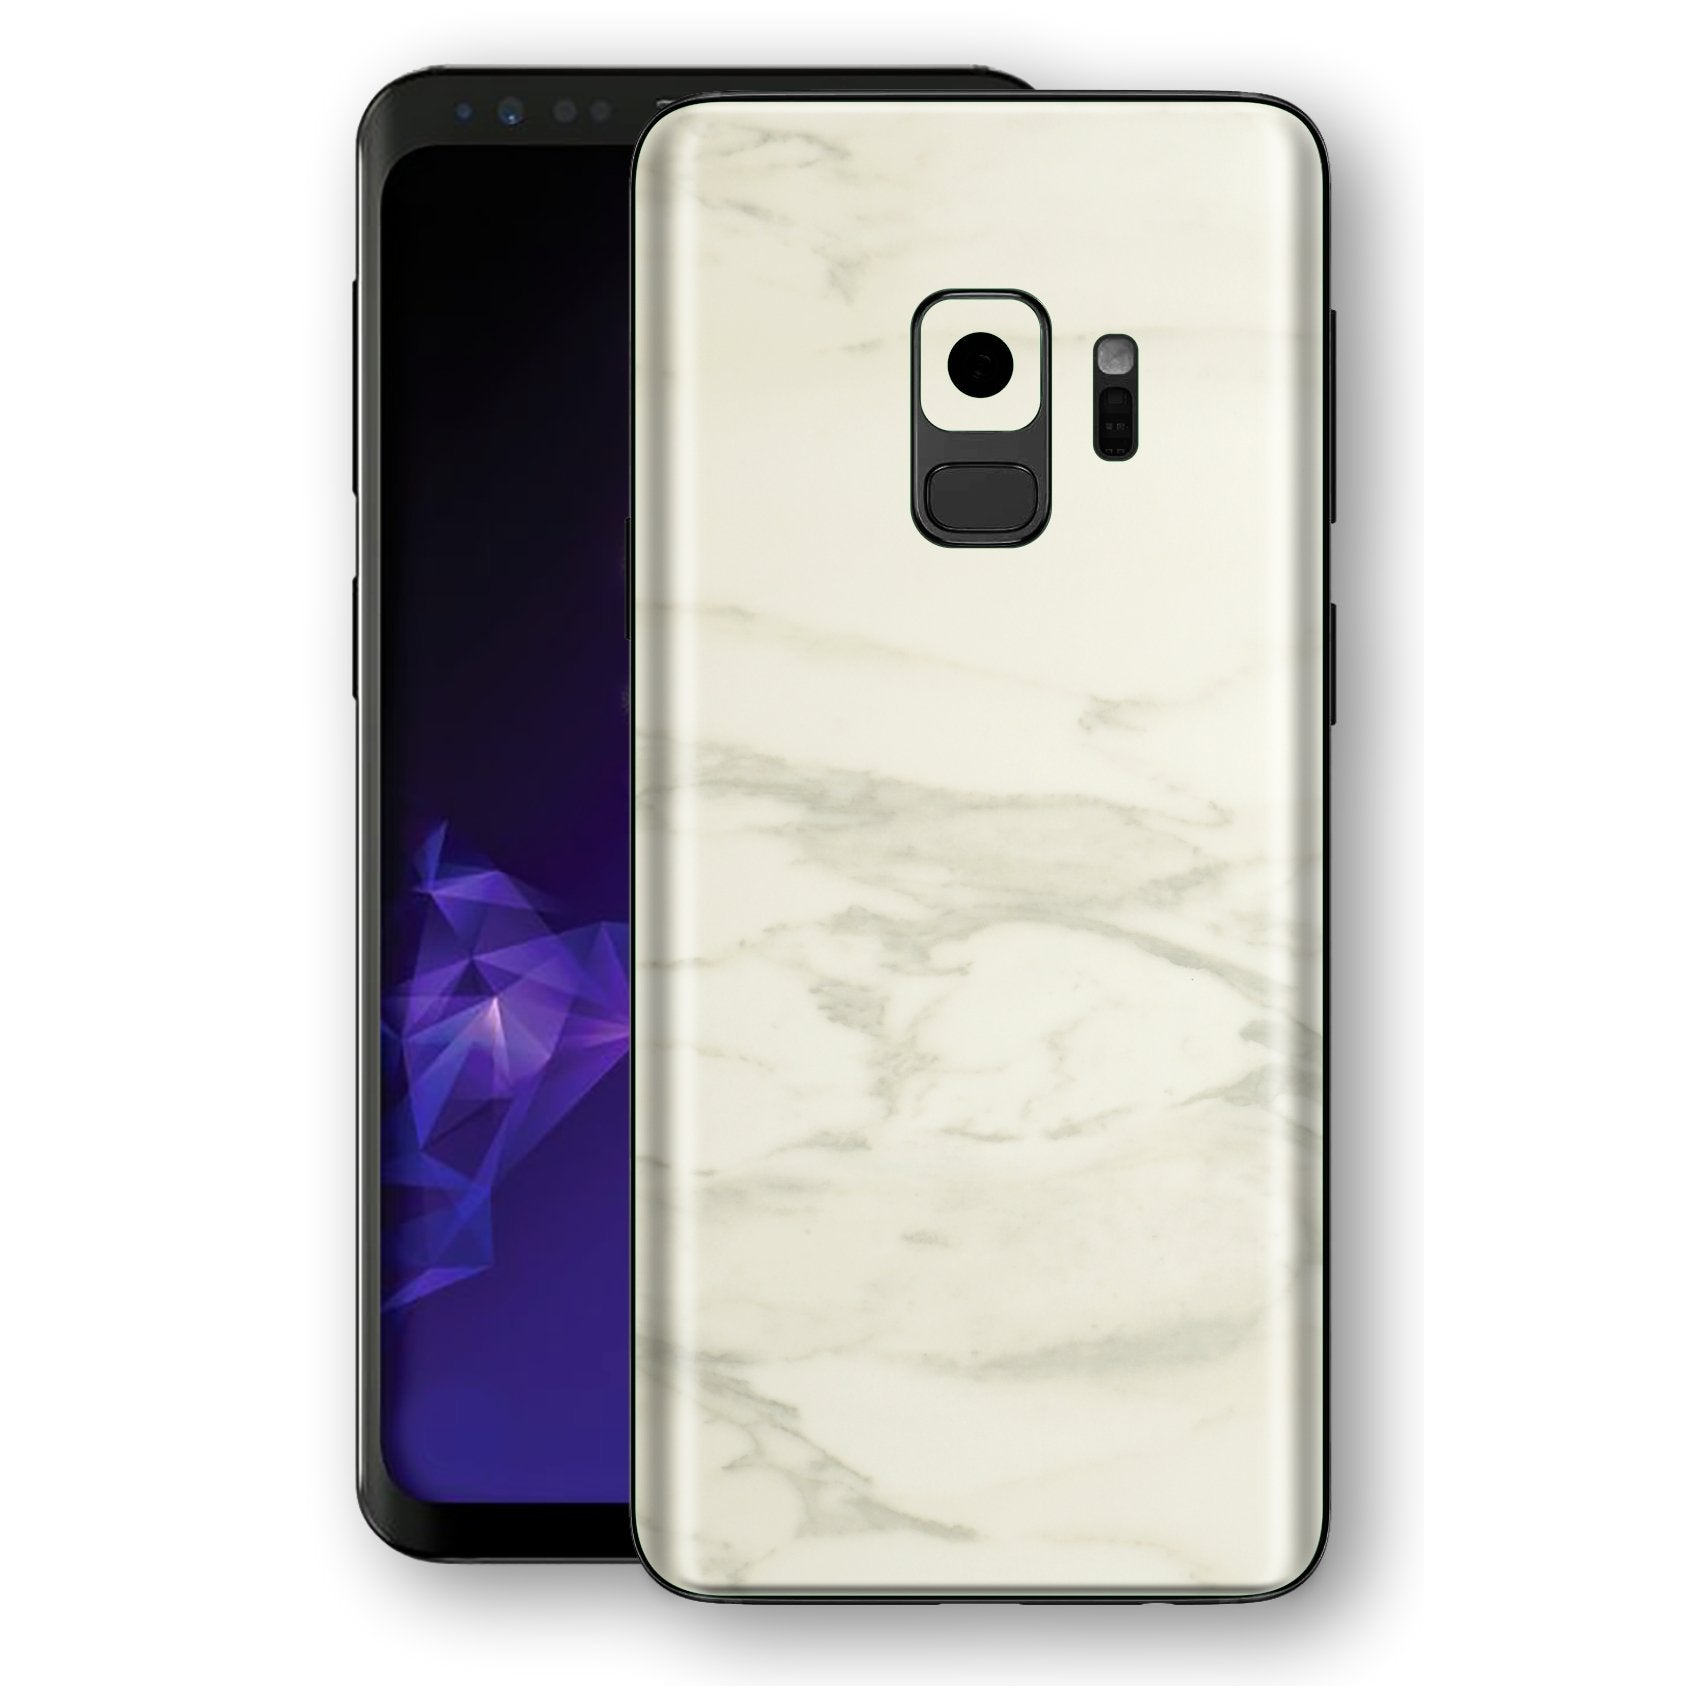 Samsung GALAXY S9 Luxuria White Marble Skin Wrap Decal Protector | EasySkinz